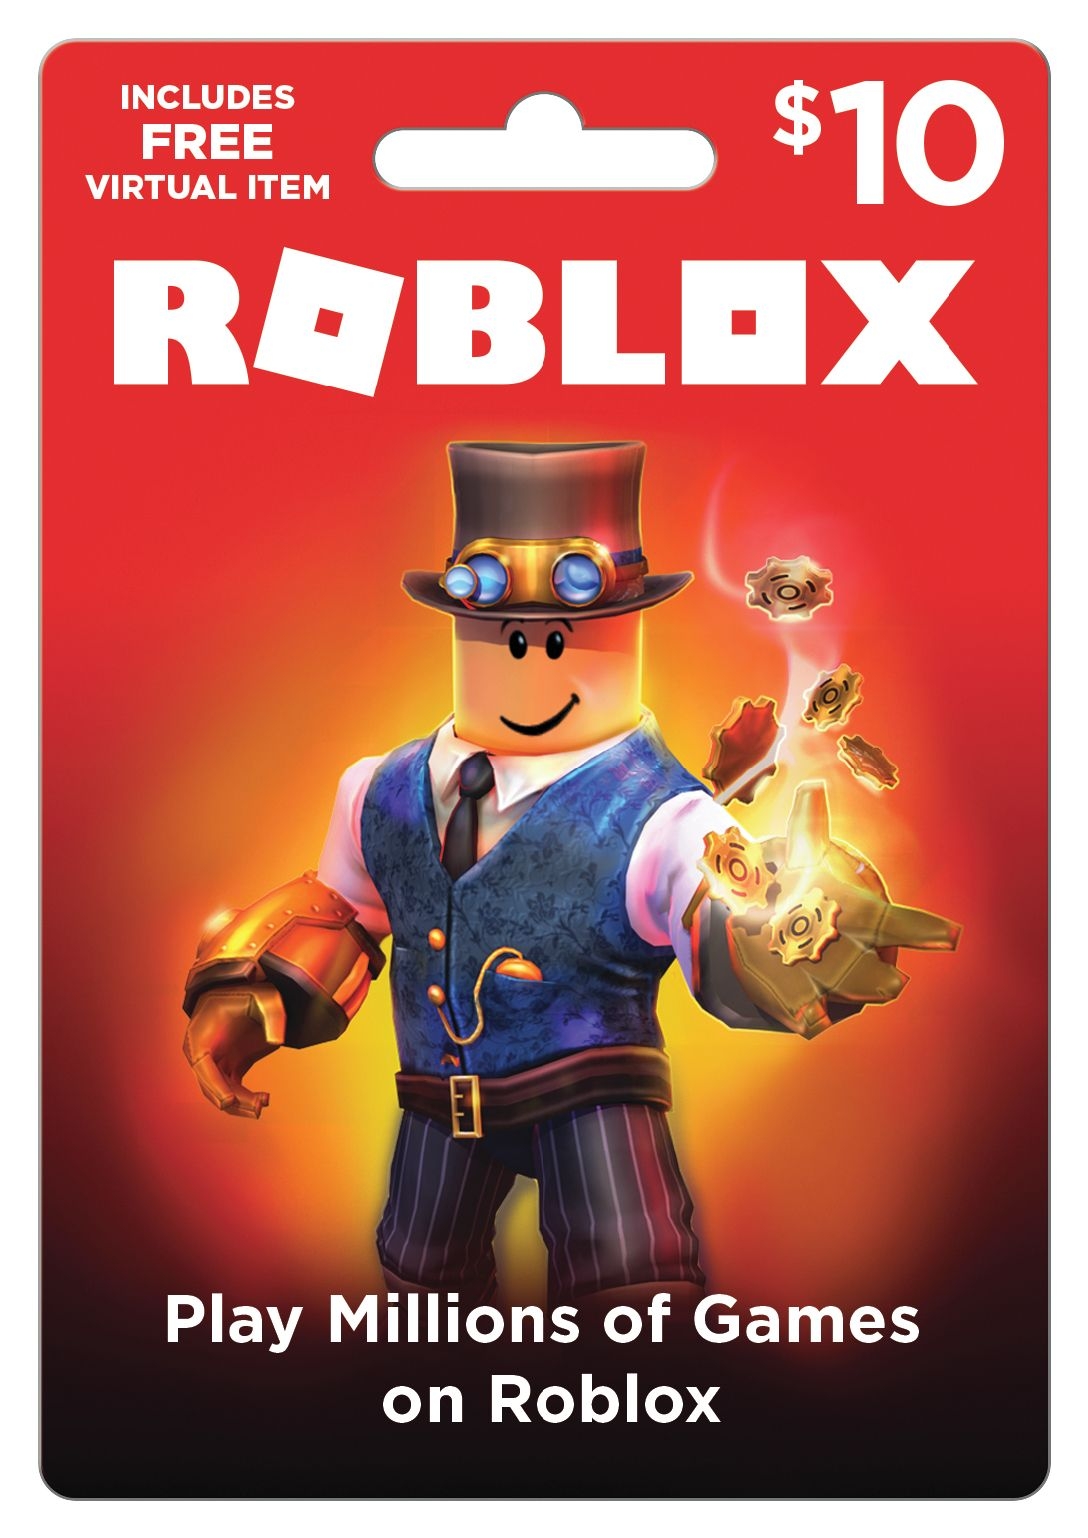 Roblox Free Online Virtual World Game Free 2 Day Shipping Buy Roblox Game Ecard 10 Digital Download At Walmart Com Roblox Gifts Roblox Roblox Online